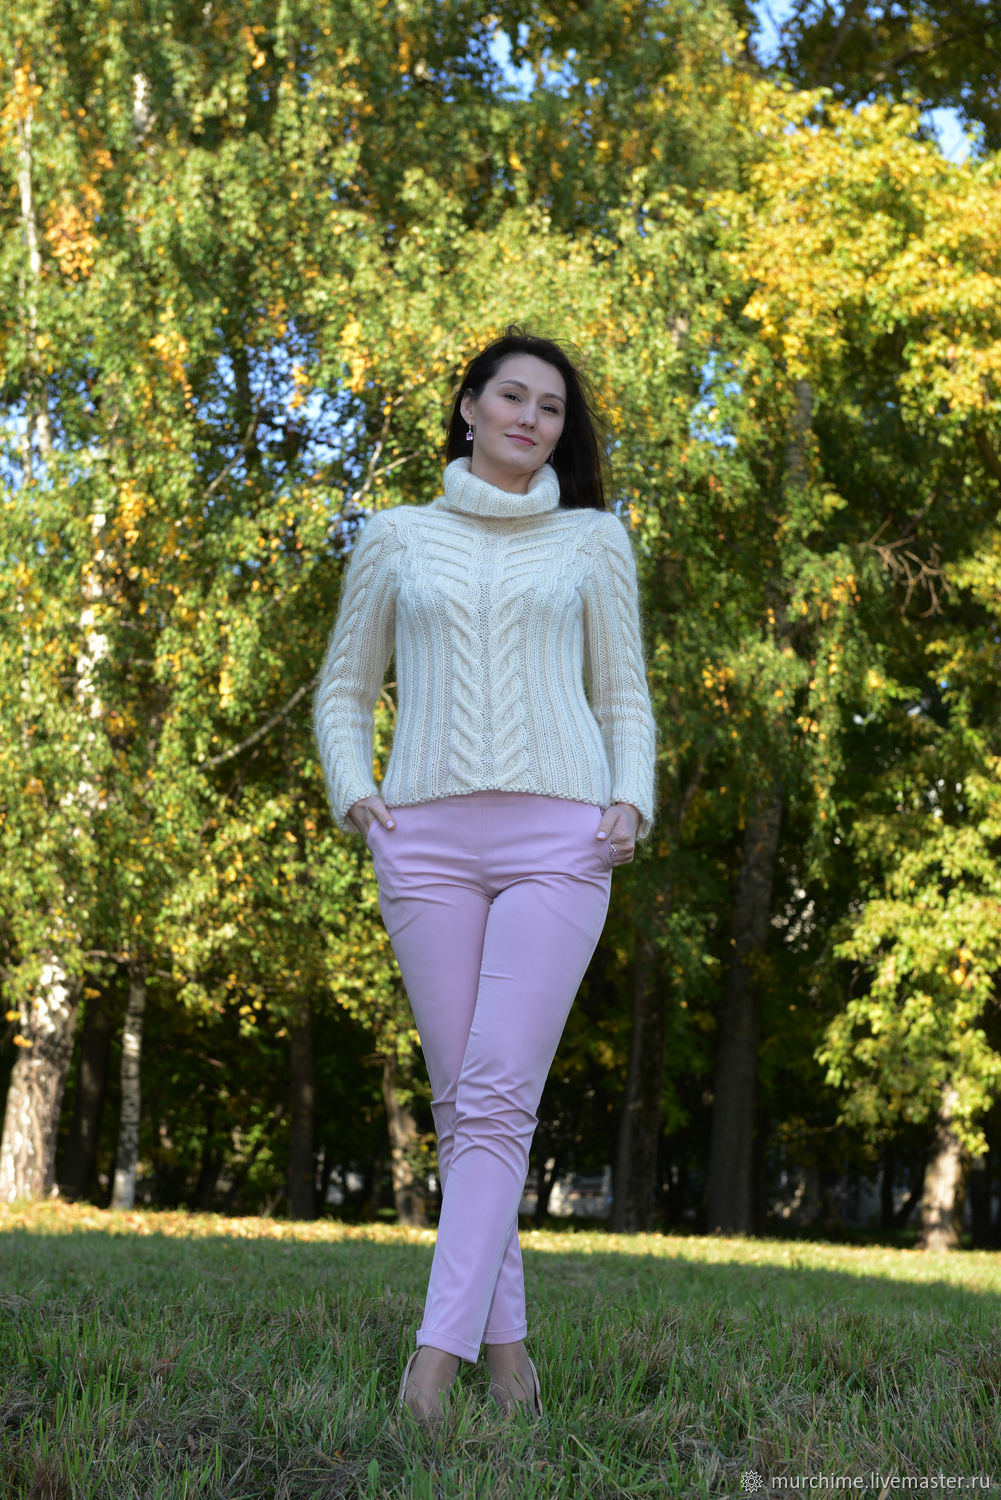 Pullover Swan Princess, Pullover Sweaters, Kirov,  Фото №1